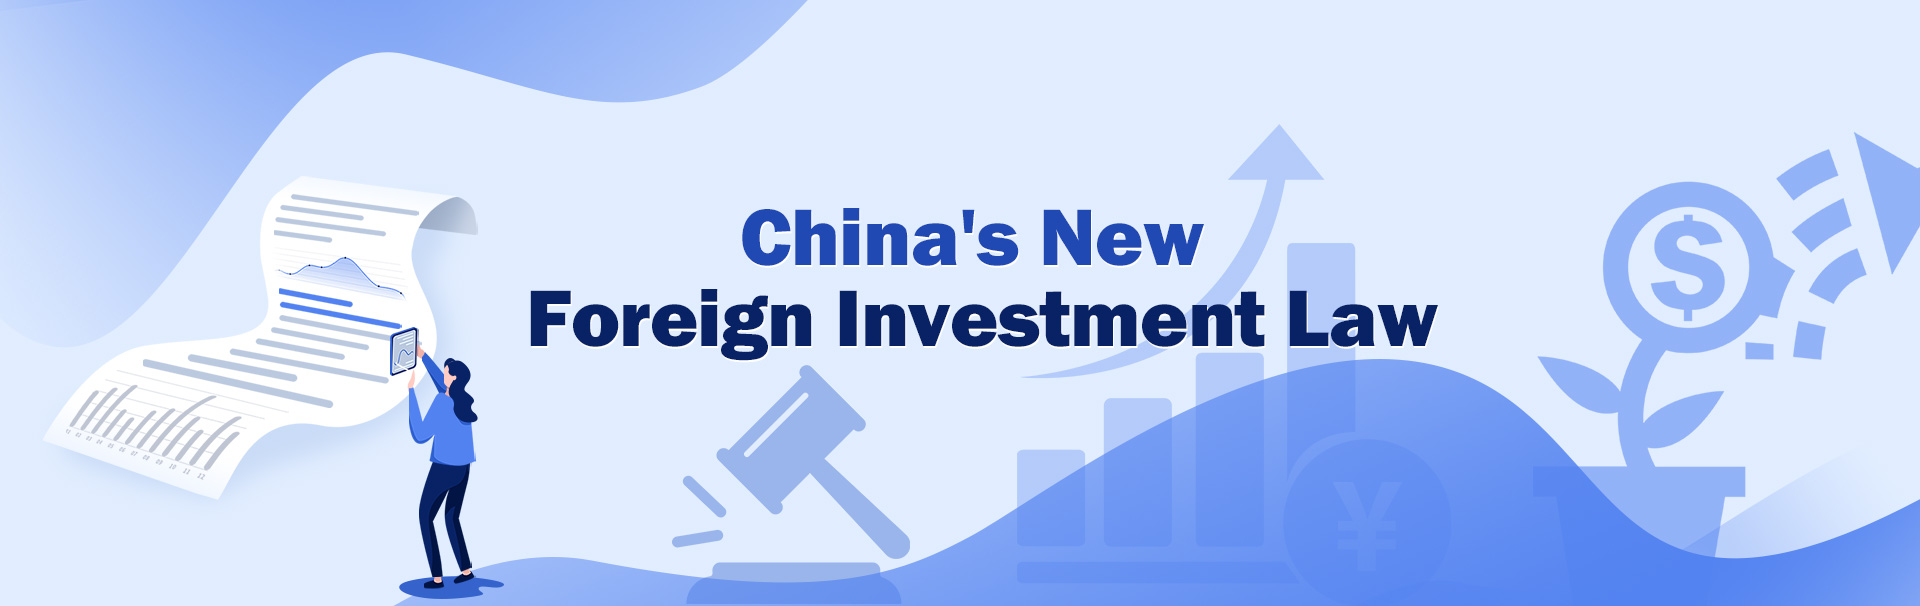 China's Foreign Investment Law